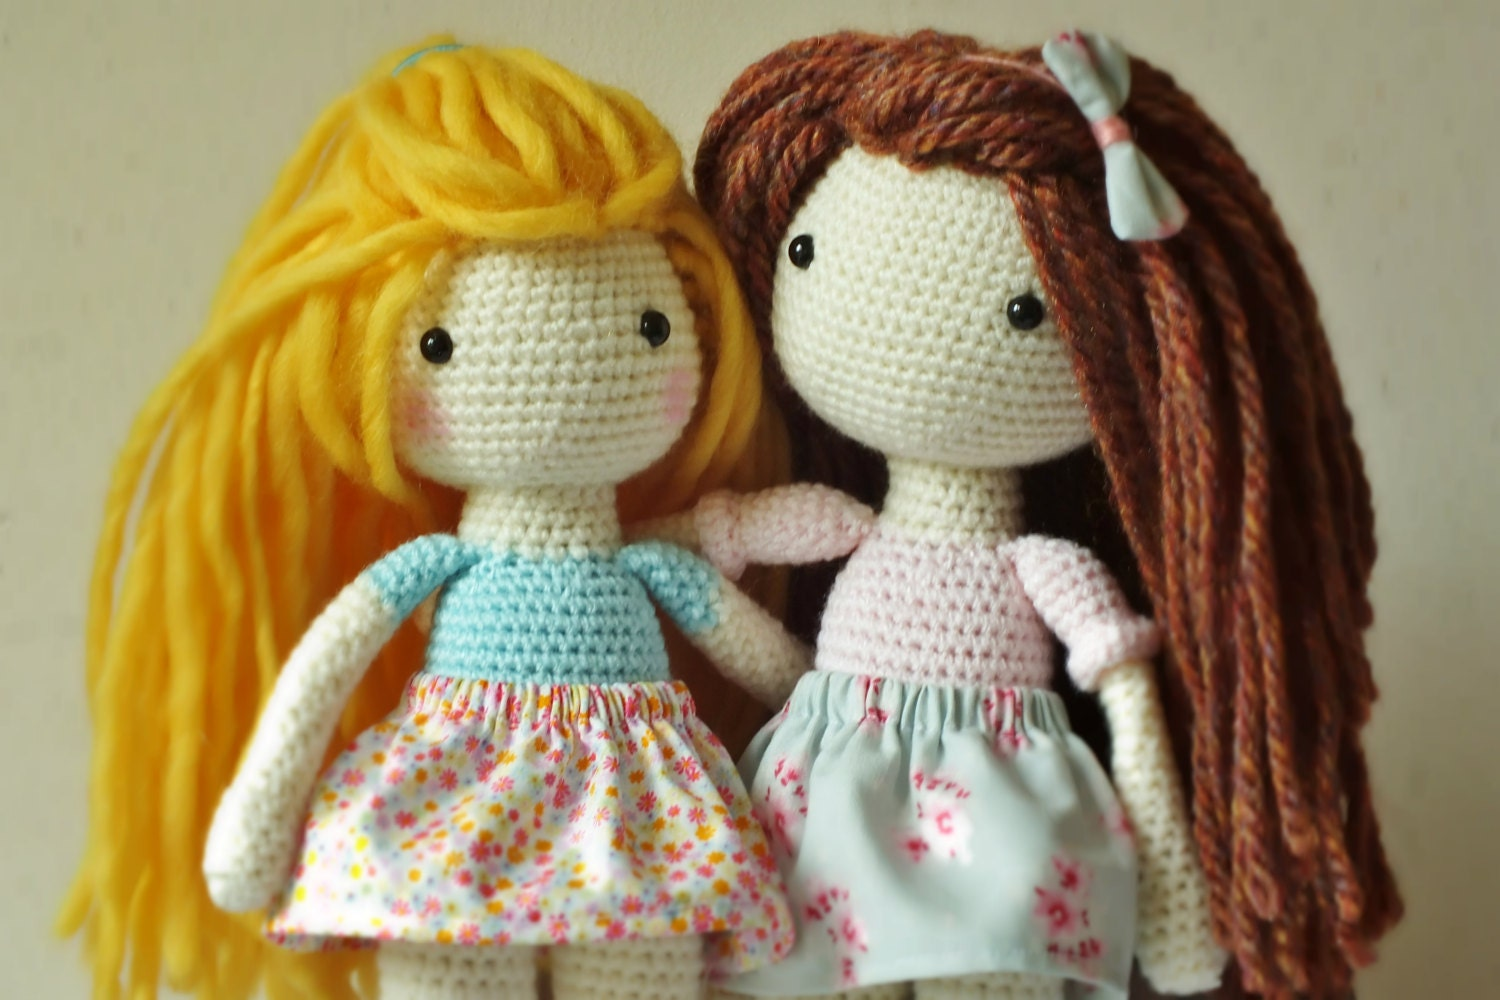 Amigurumi Square Doll : Crochet Amigurumi Doll PATTERN ONLY PDF Instant Download